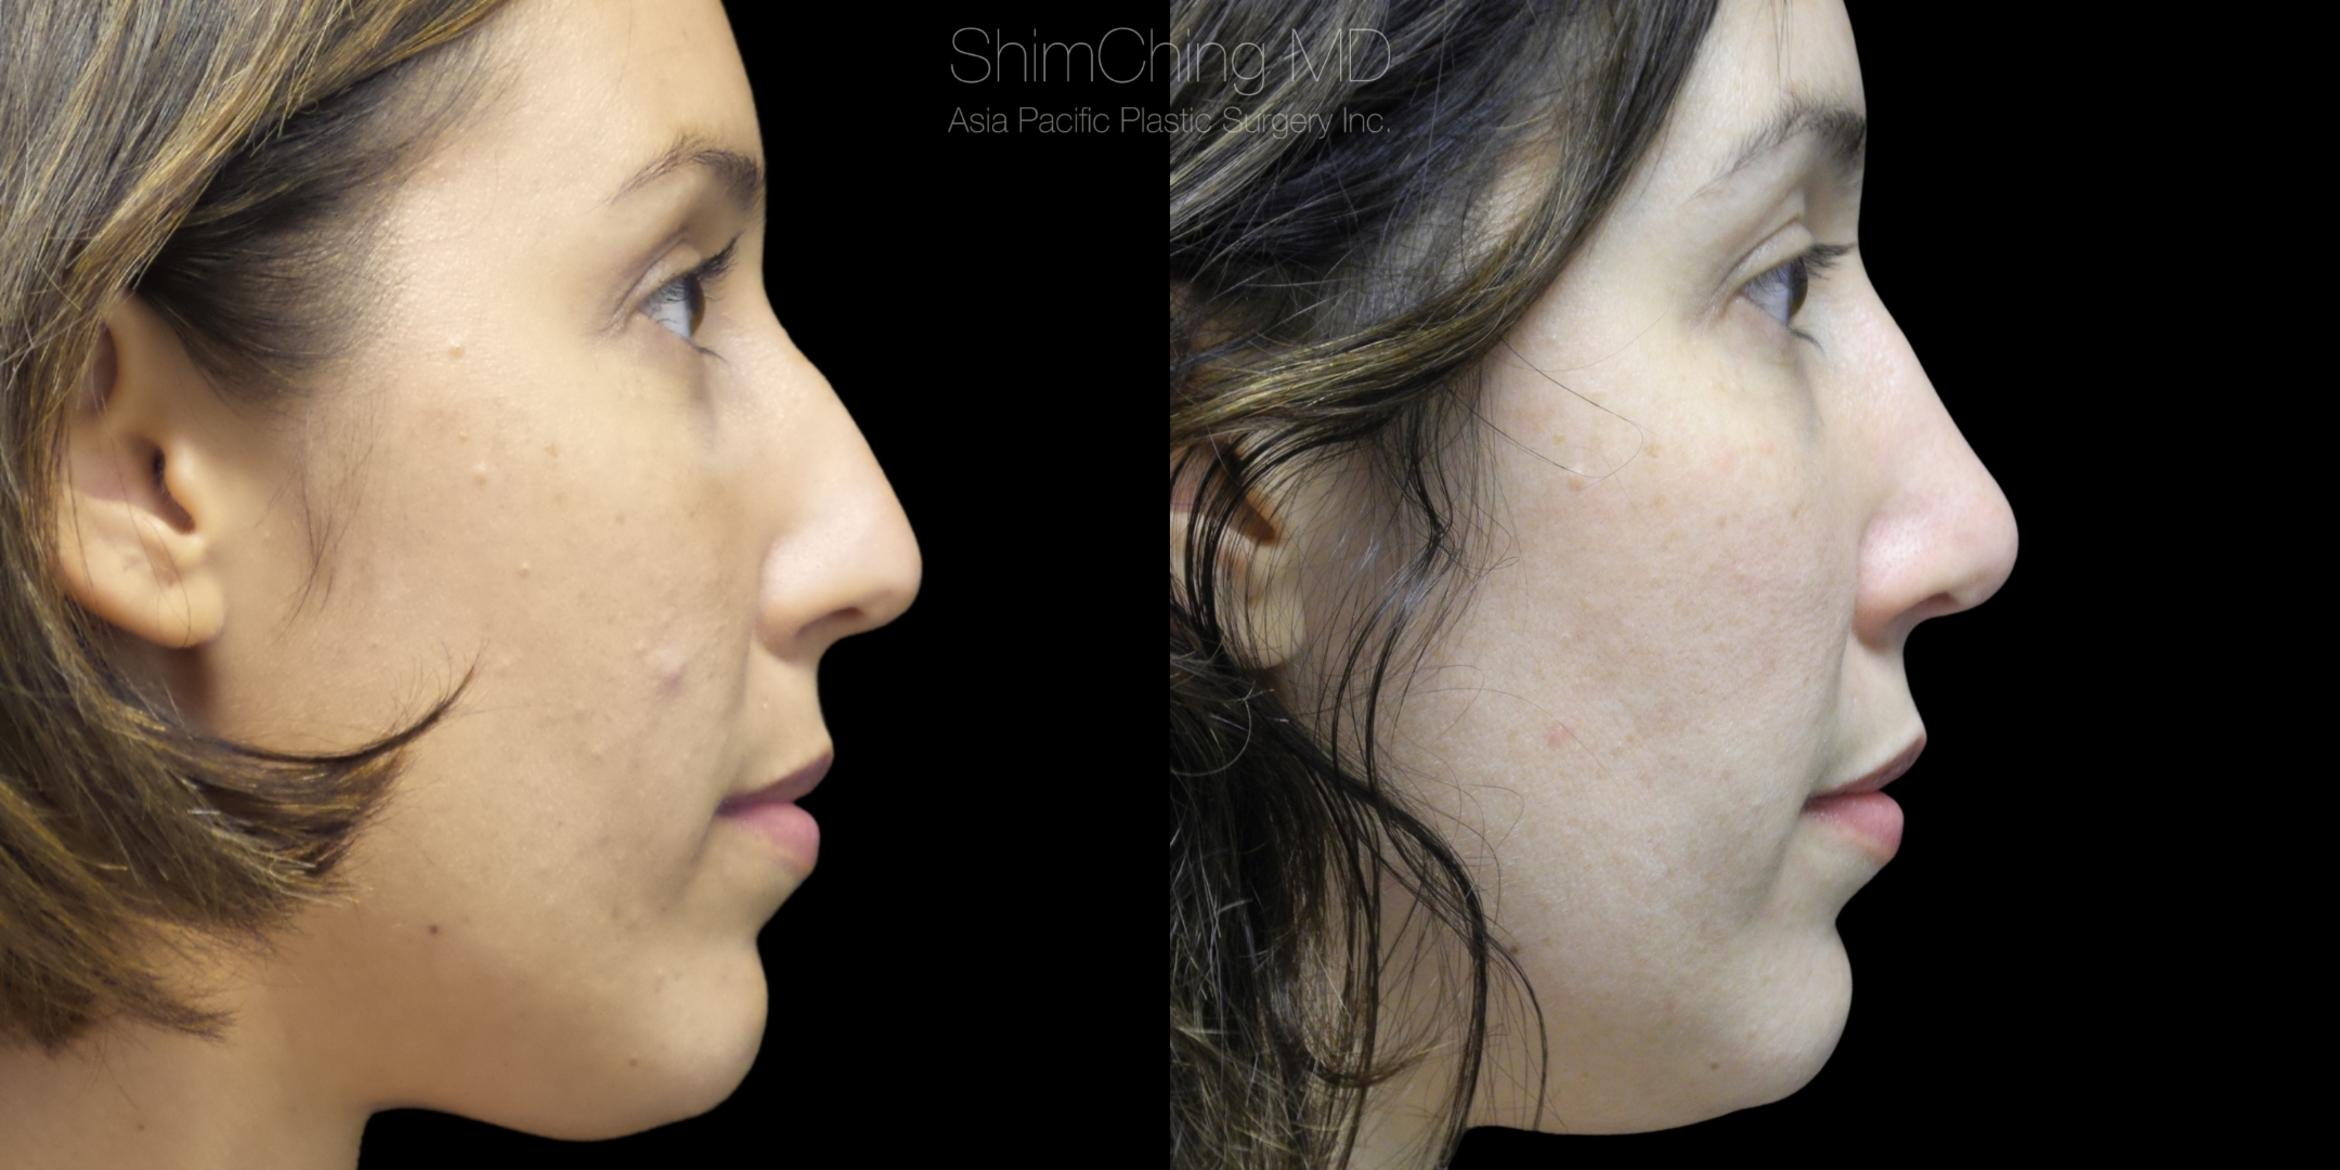 Rhinoplasty Case 309 Before & After Left Side | Honolulu, HI | Shim Ching, MD: Asia Pacific Plastic Surgery